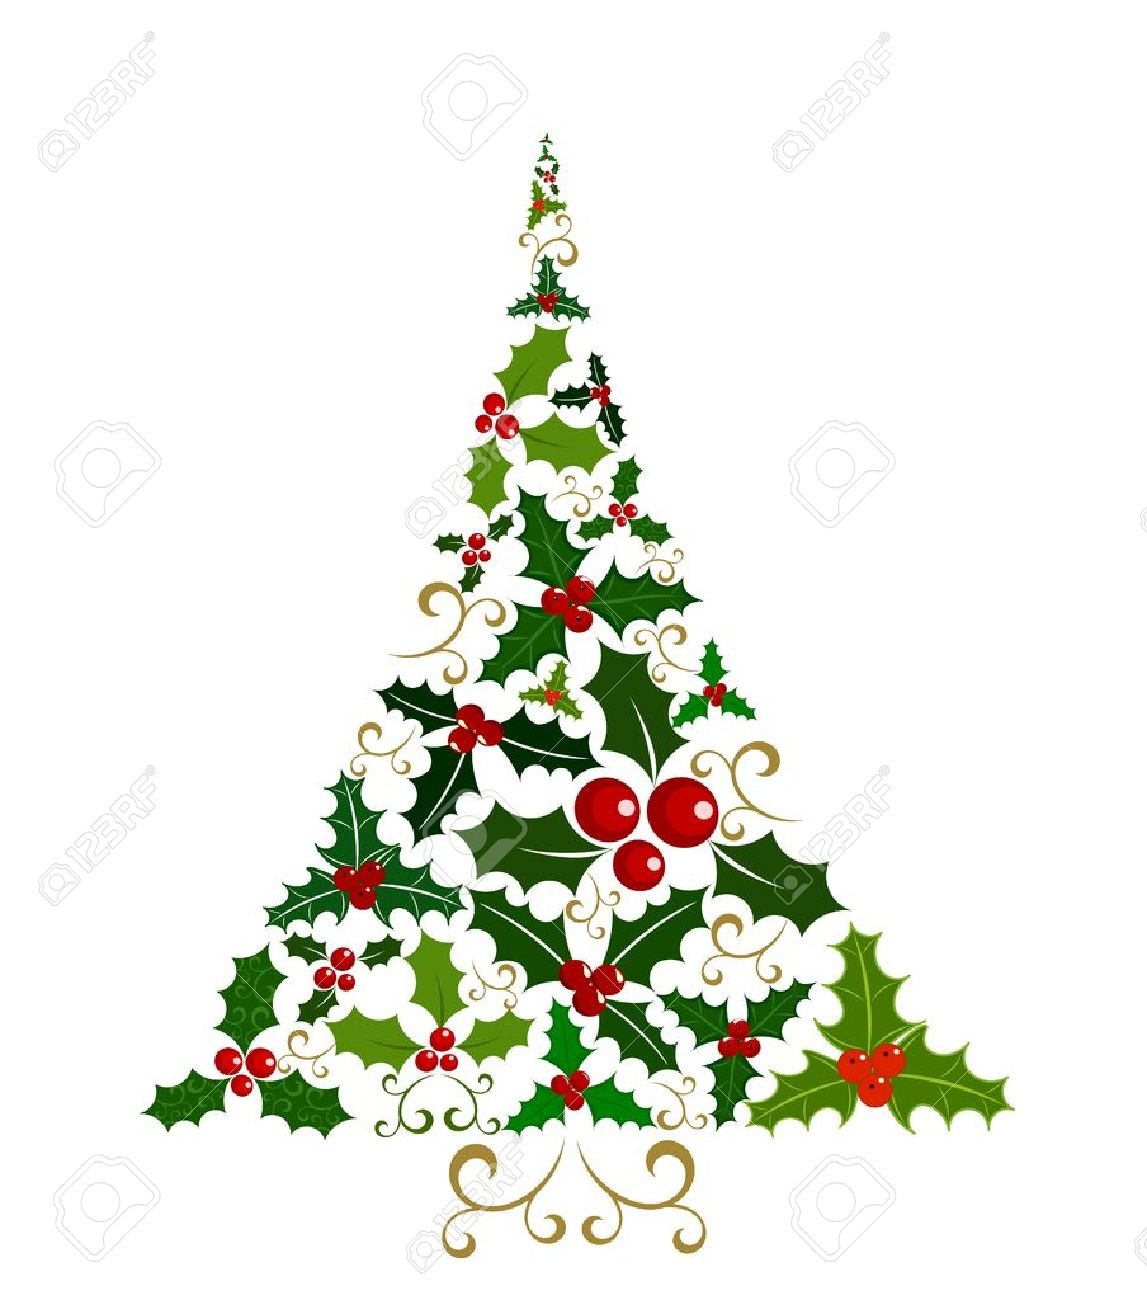 Abstract Christmas Tree Isolated Made Of Various Holly Berry